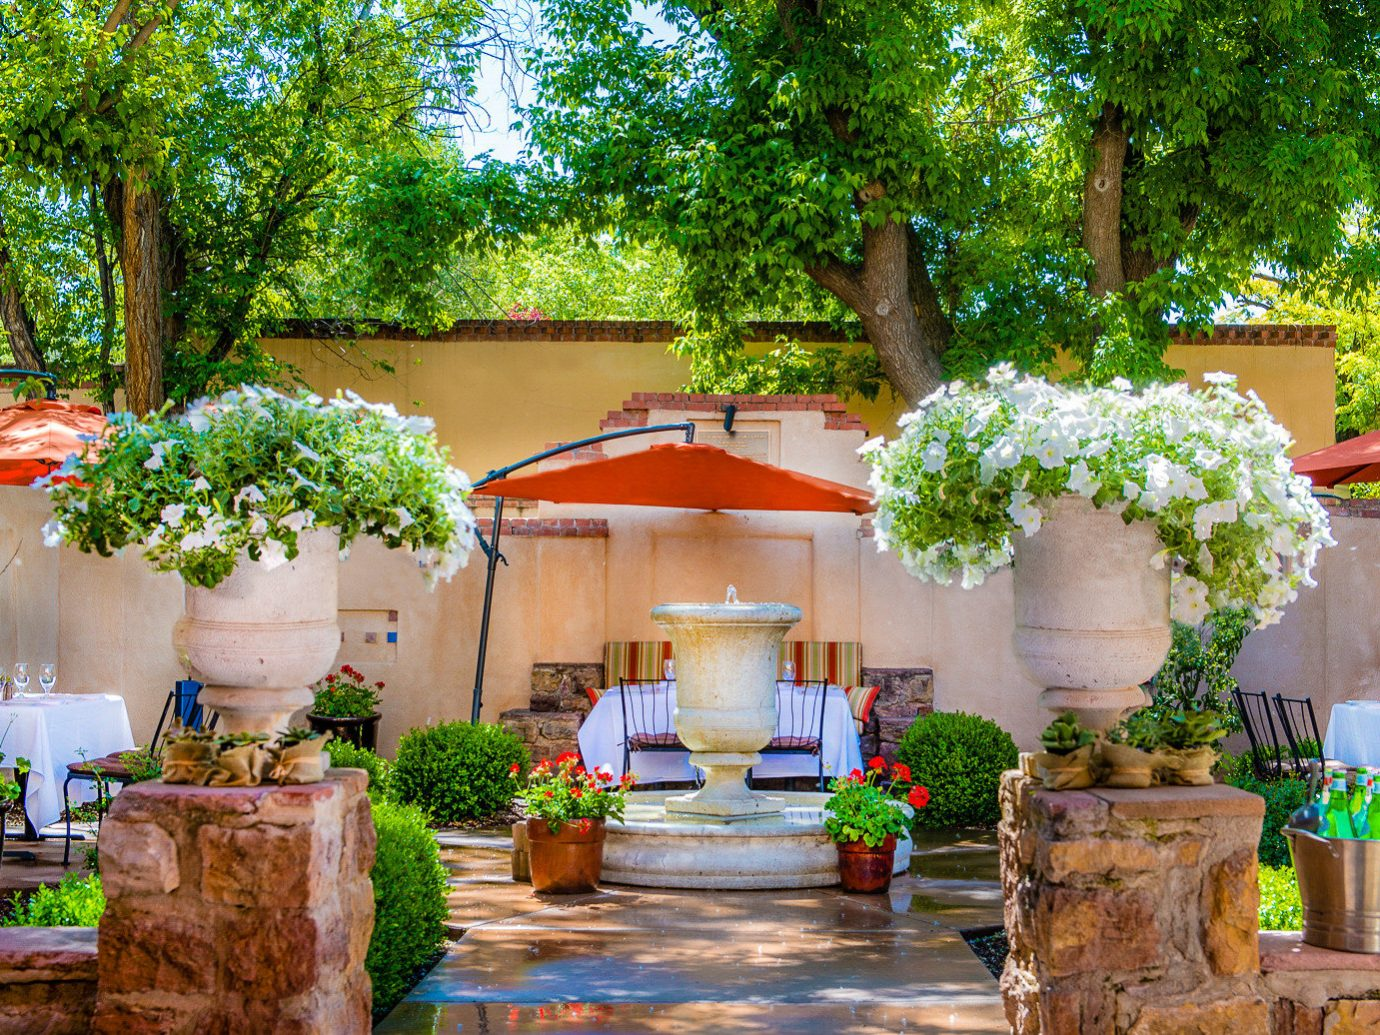 tree outdoor plant flower backyard Garden outdoor structure floristry home Courtyard yard real estate house Patio landscaping hacienda leisure several